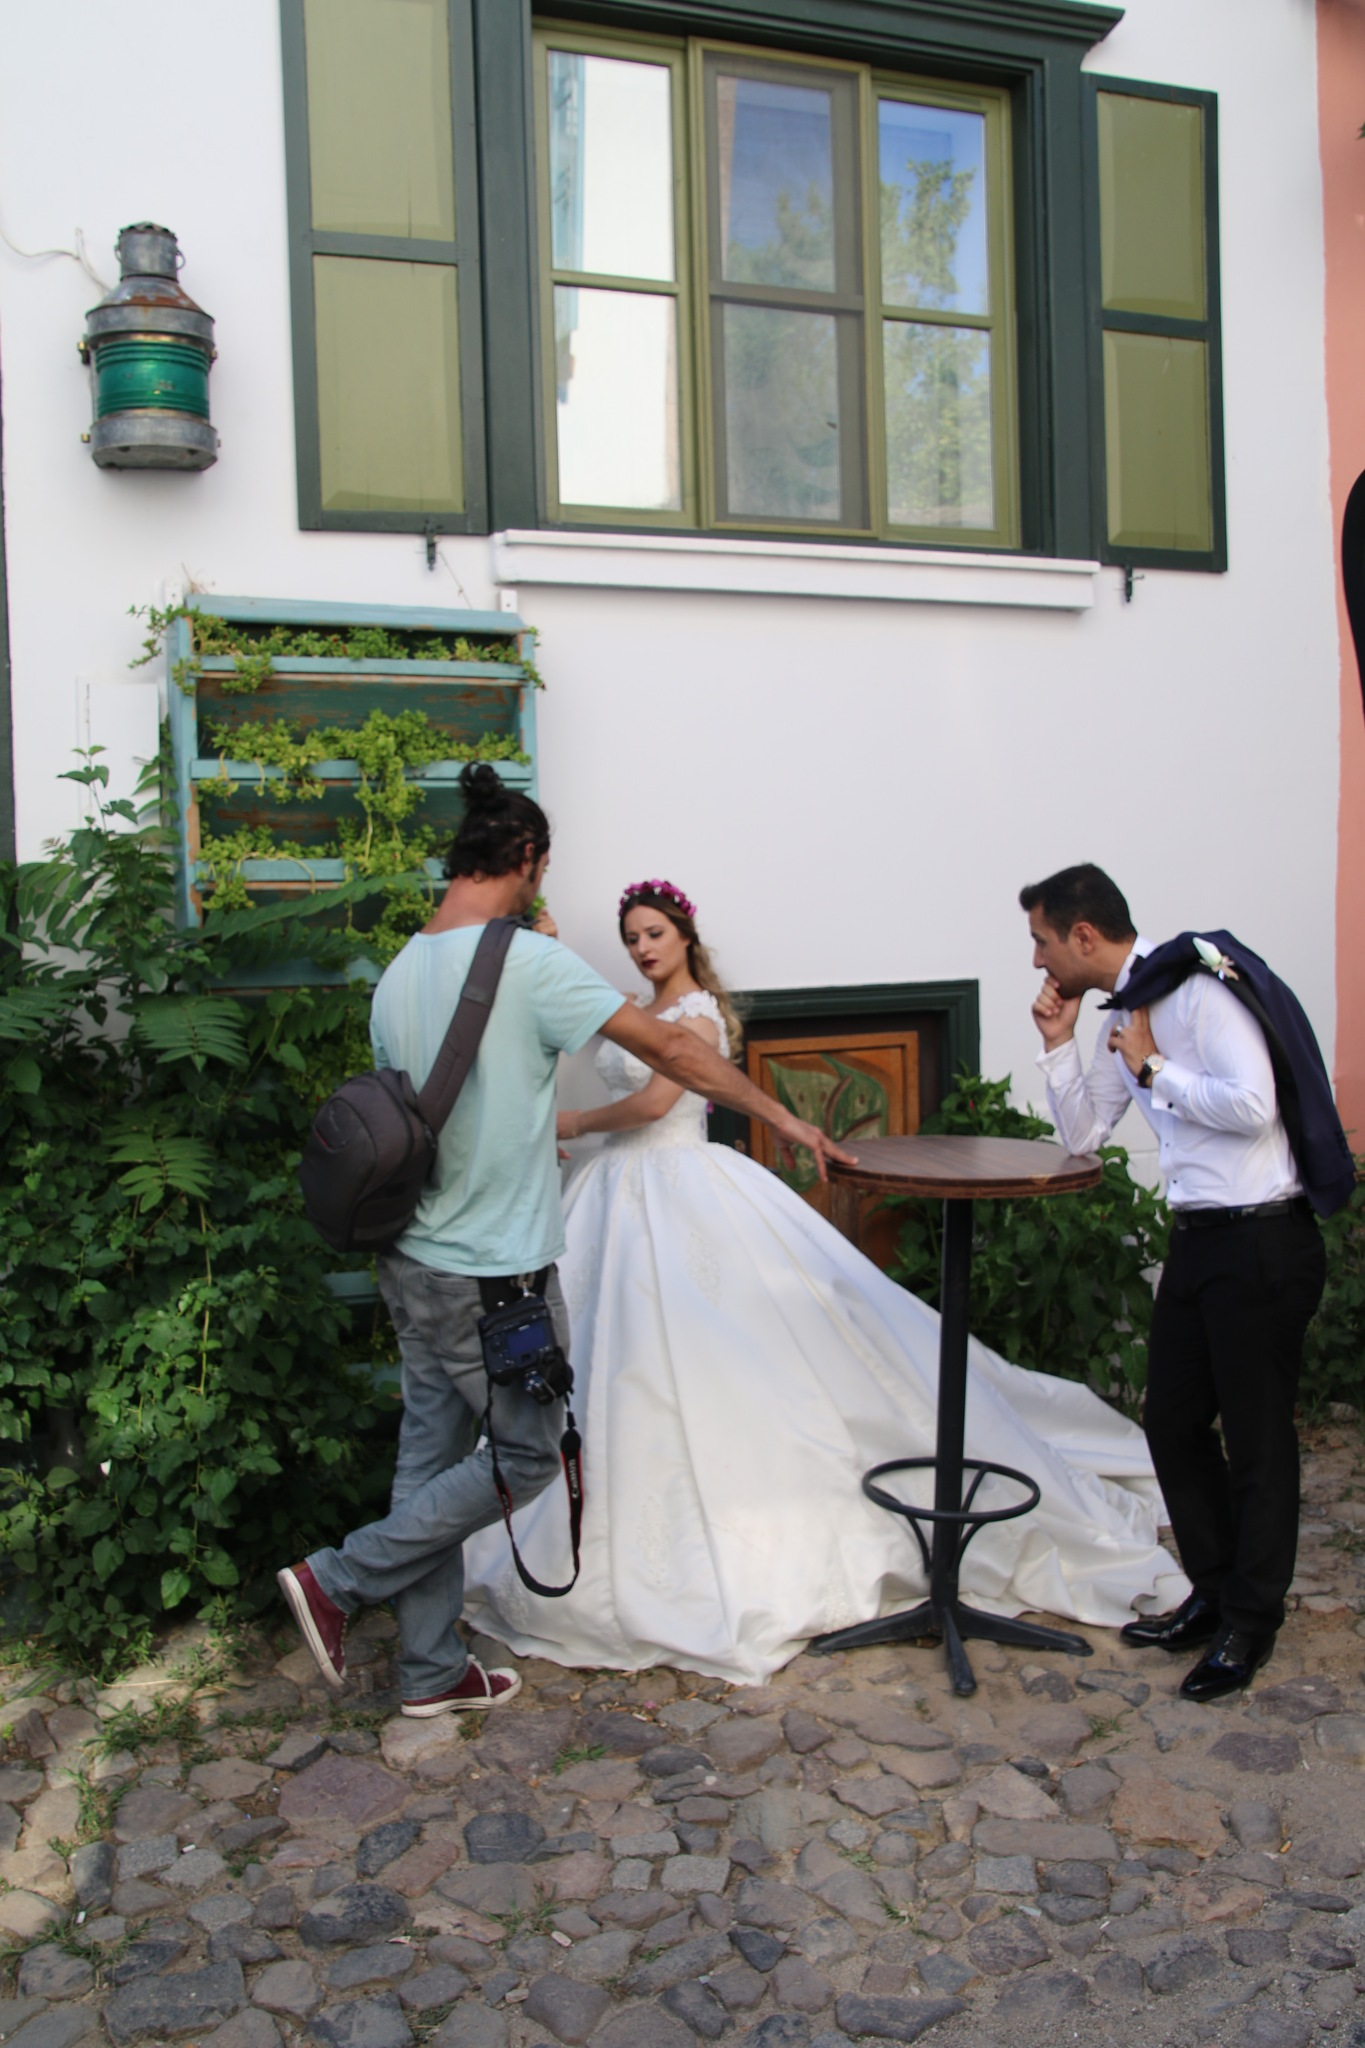 Before marriage one has to work for PR by Atilla Gunhan Photograpy